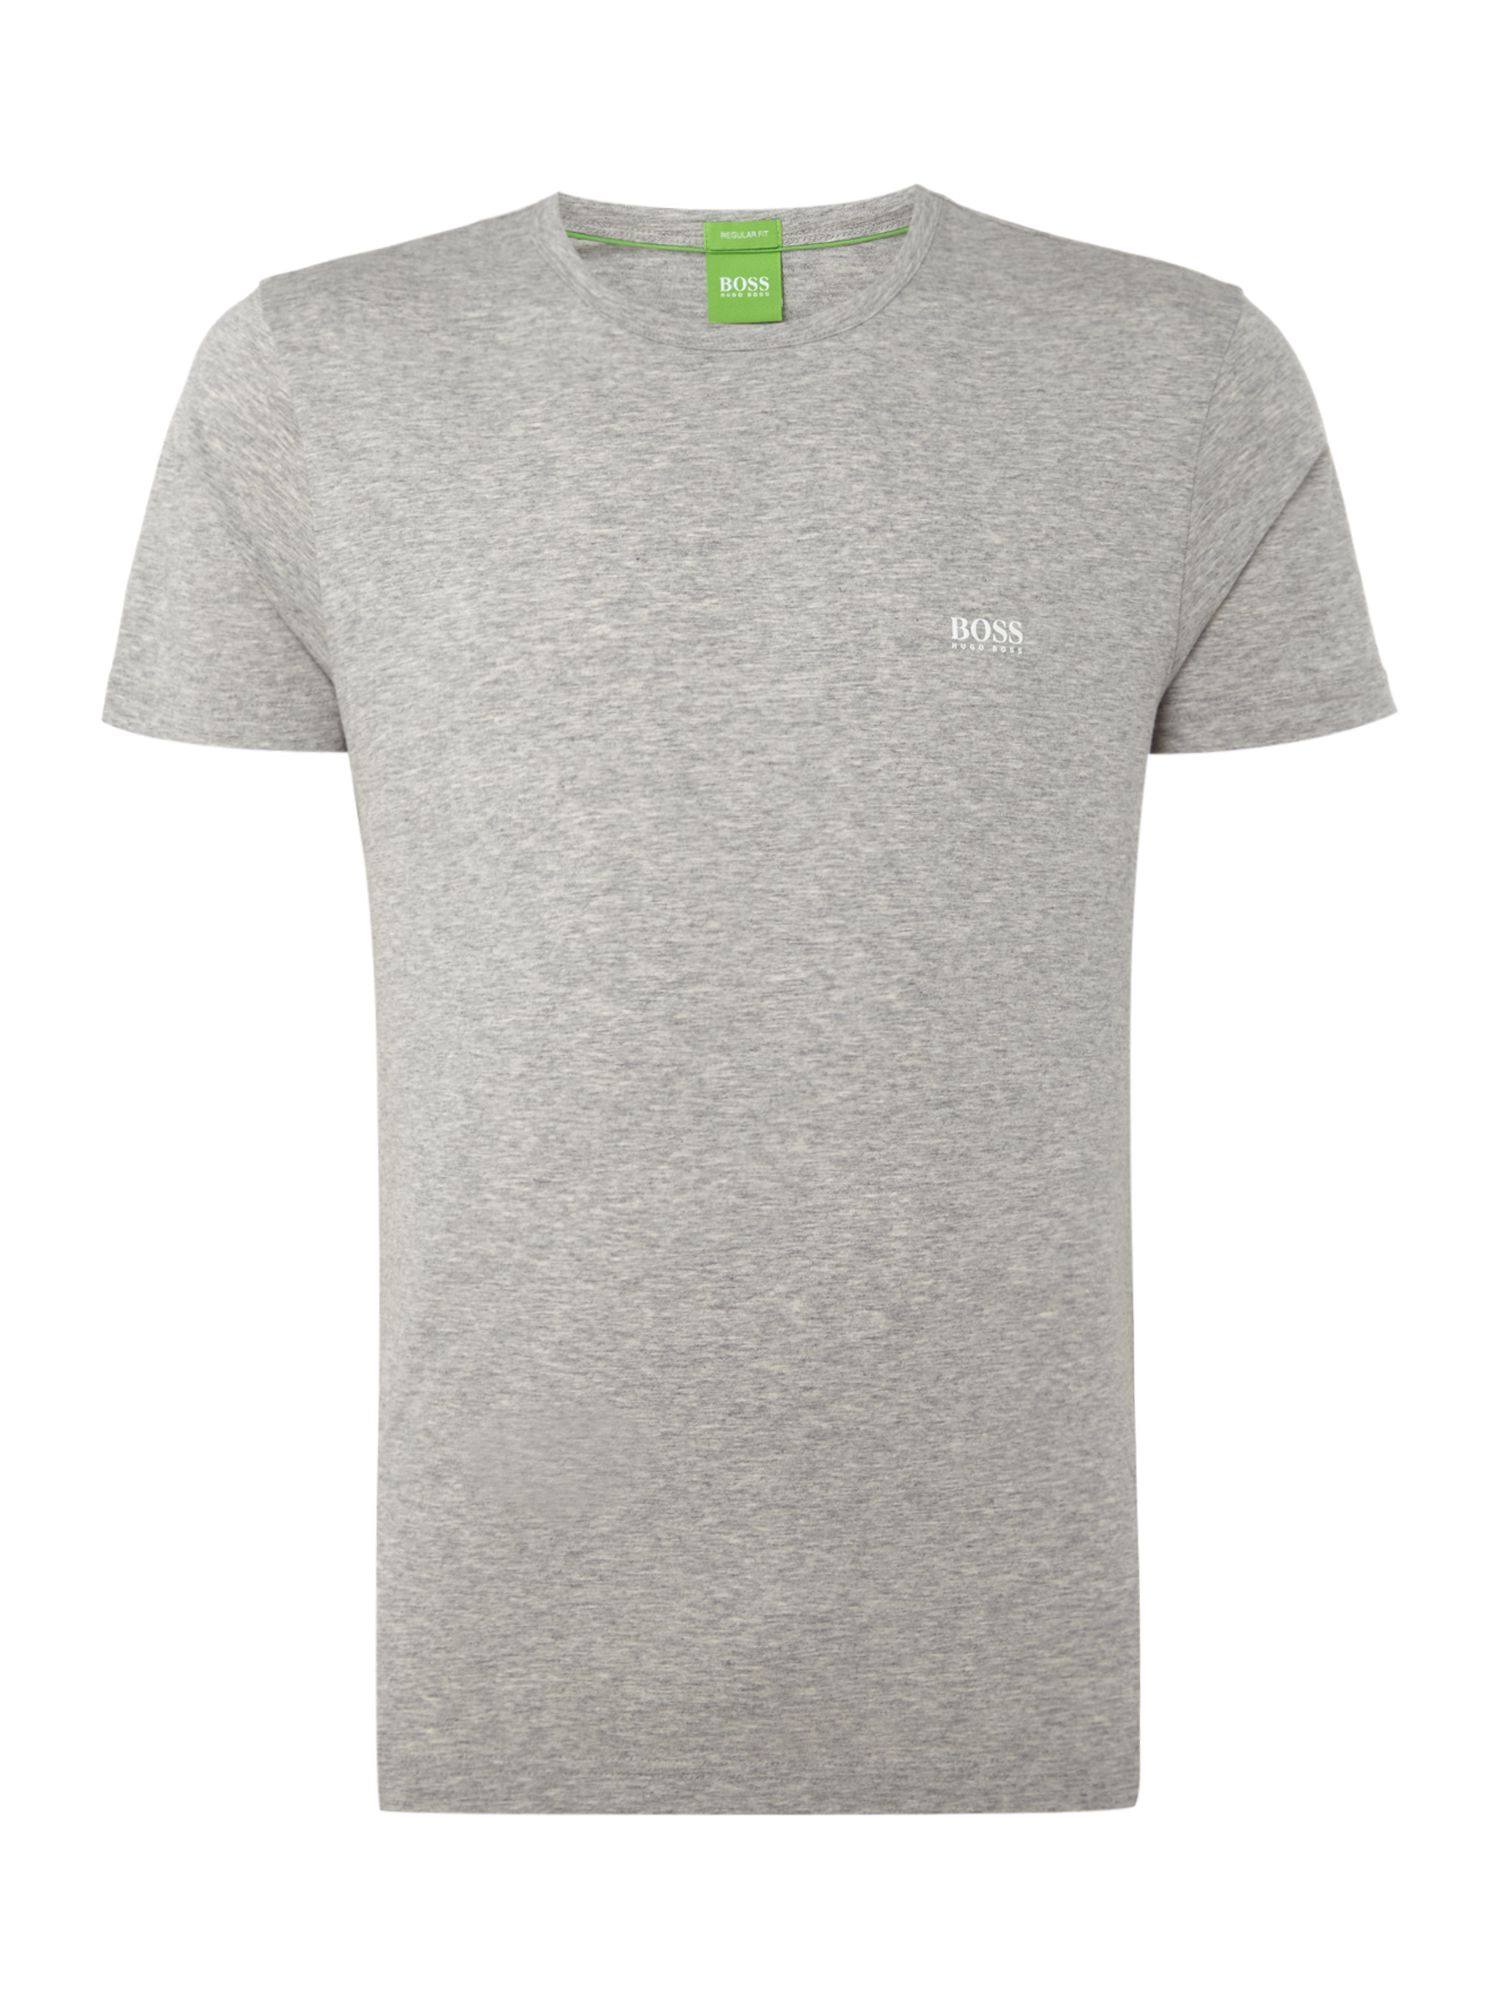 Men's Hugo Boss Crew Neck Regular Fit T-Shirt, Grey Marl